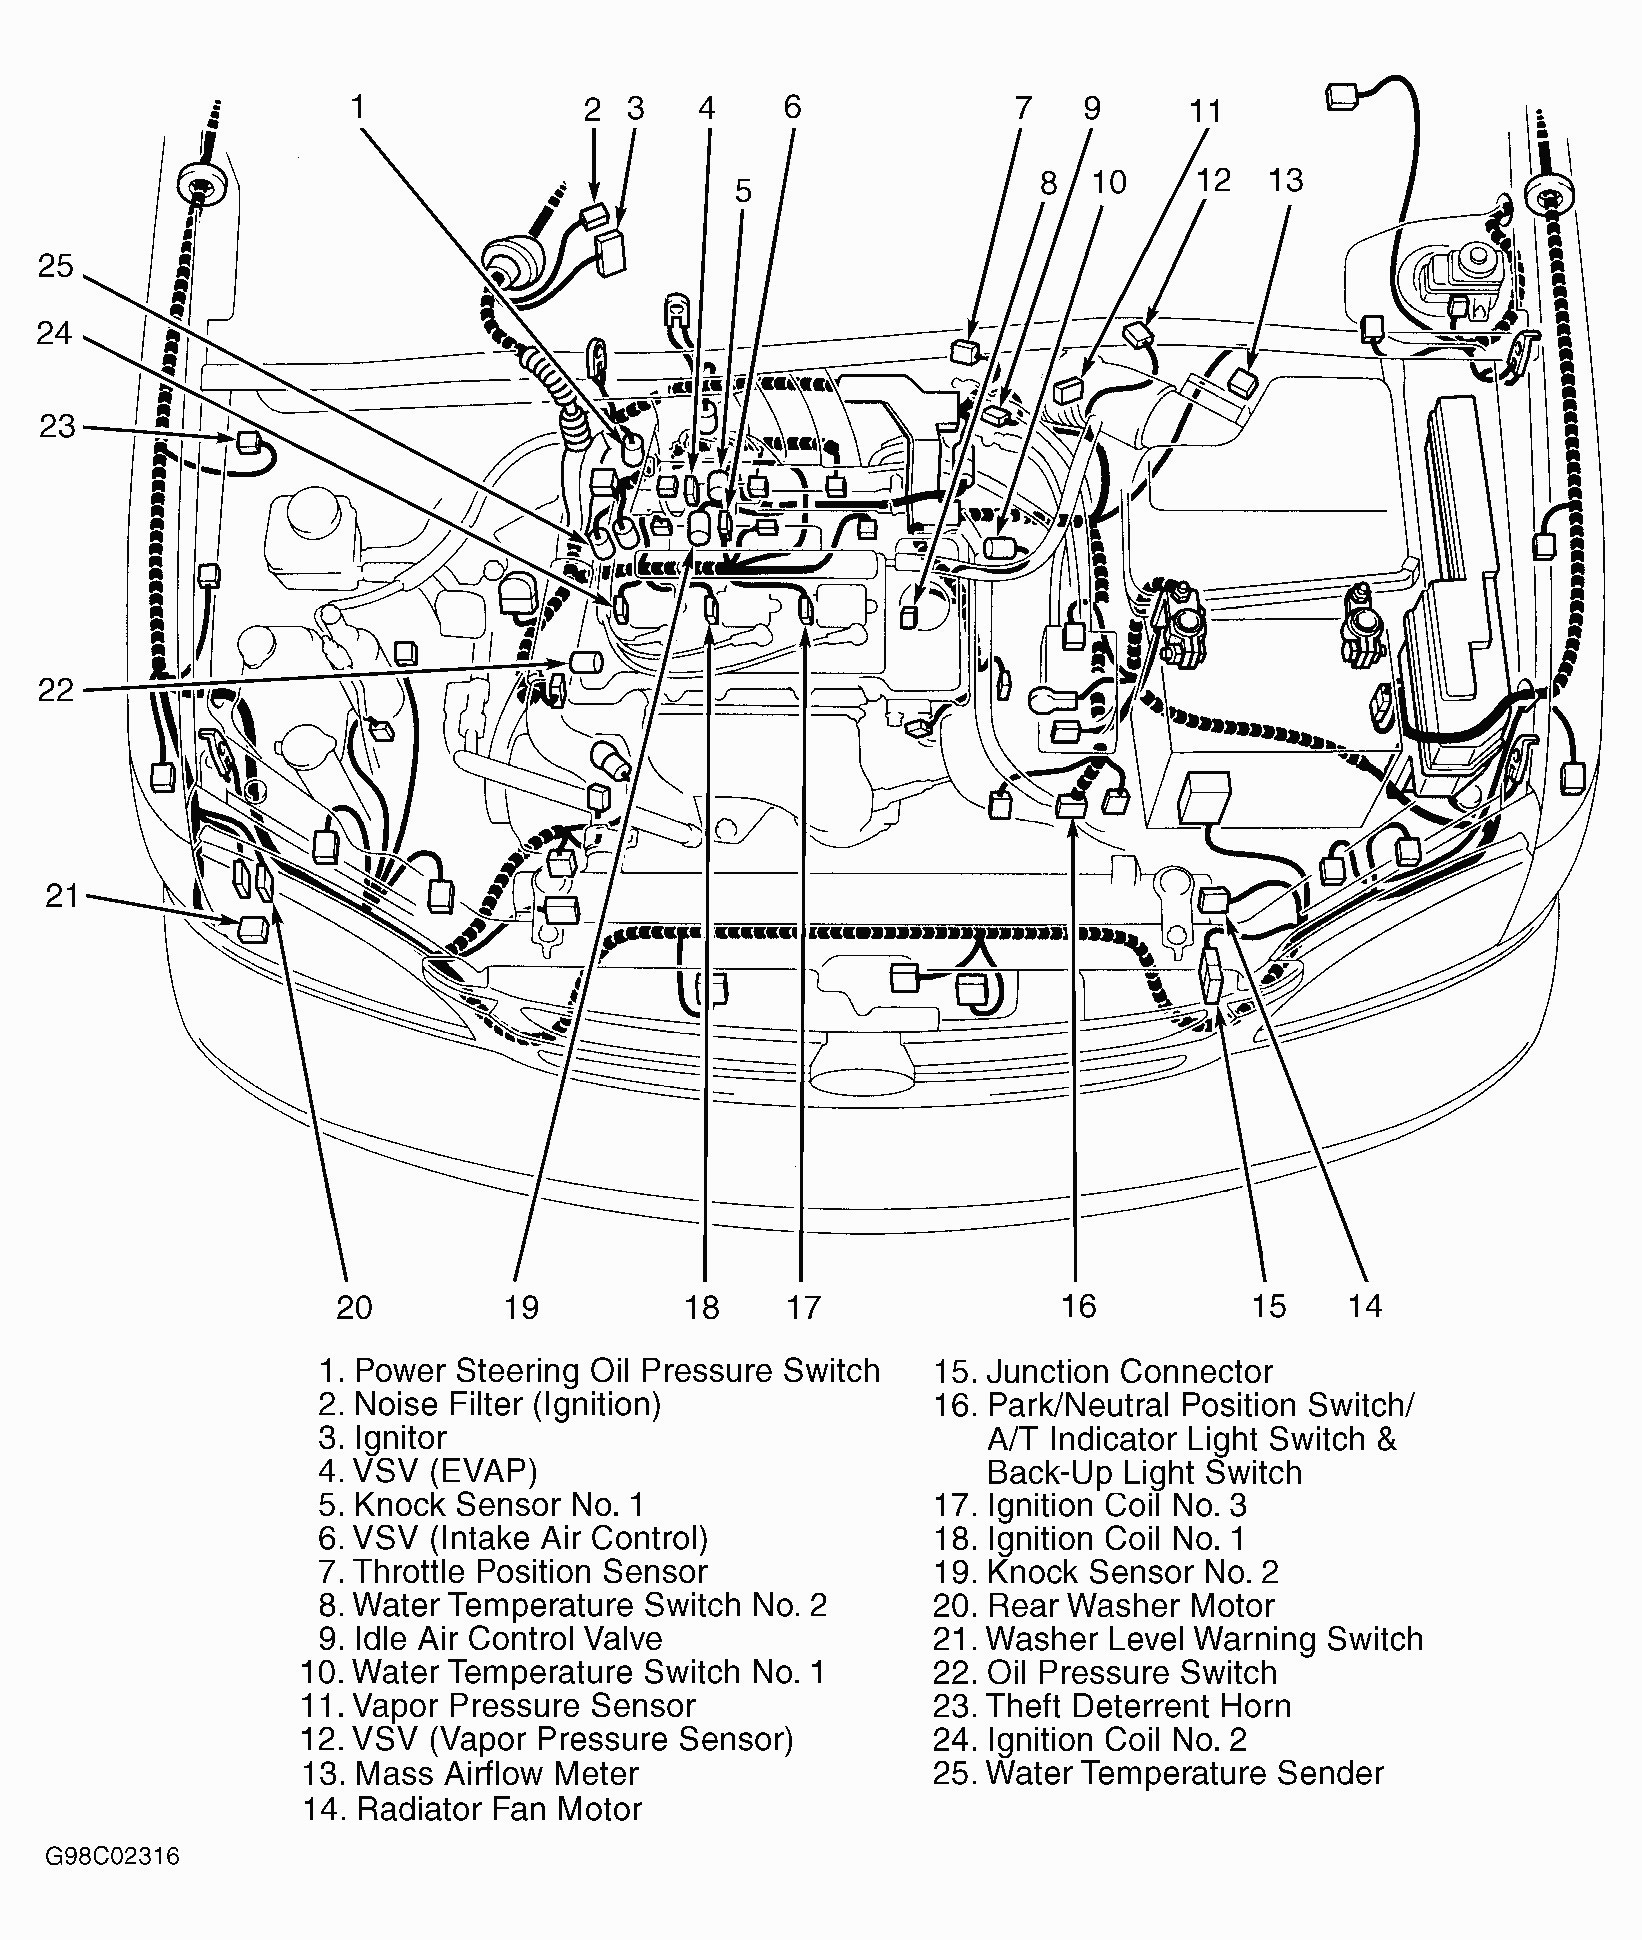 94 toyota Corolla Engine Diagram toyota Engine Schematics Wiring Diagram Paper Of 94 toyota Corolla Engine Diagram